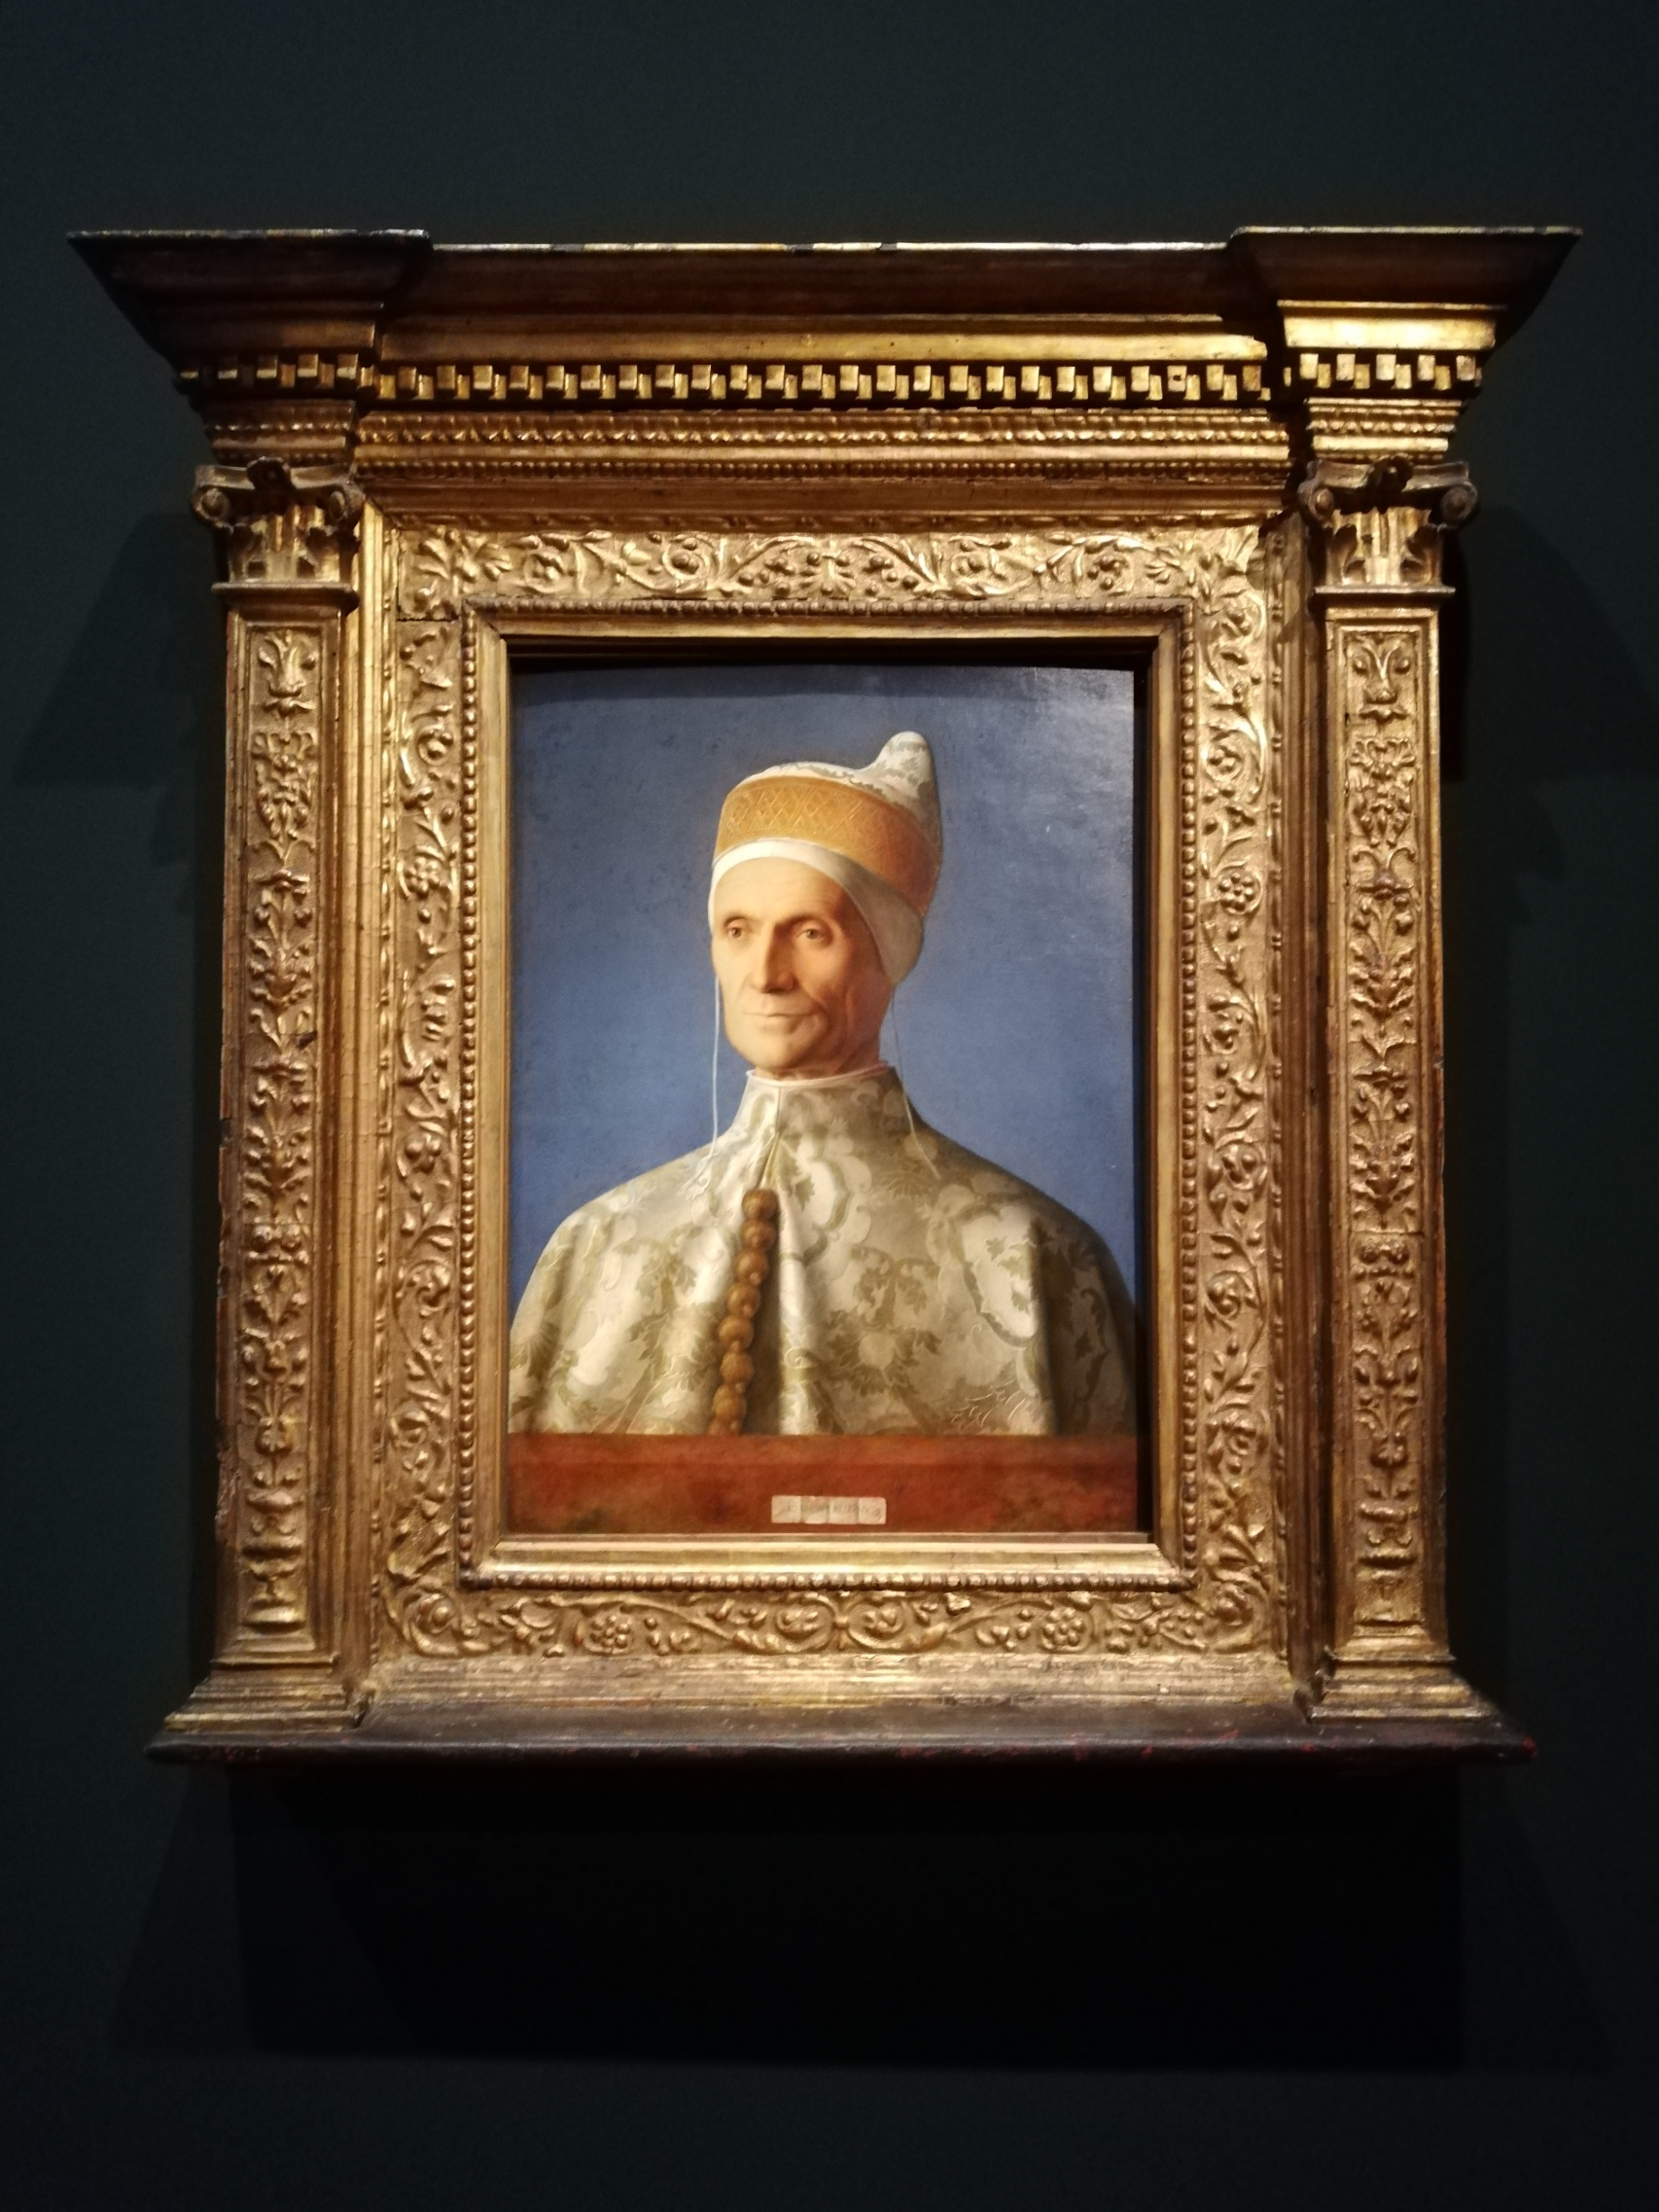 Giovanni Bellini, Il Doge Leonardo Loredan, 1501/02, National Gallery London